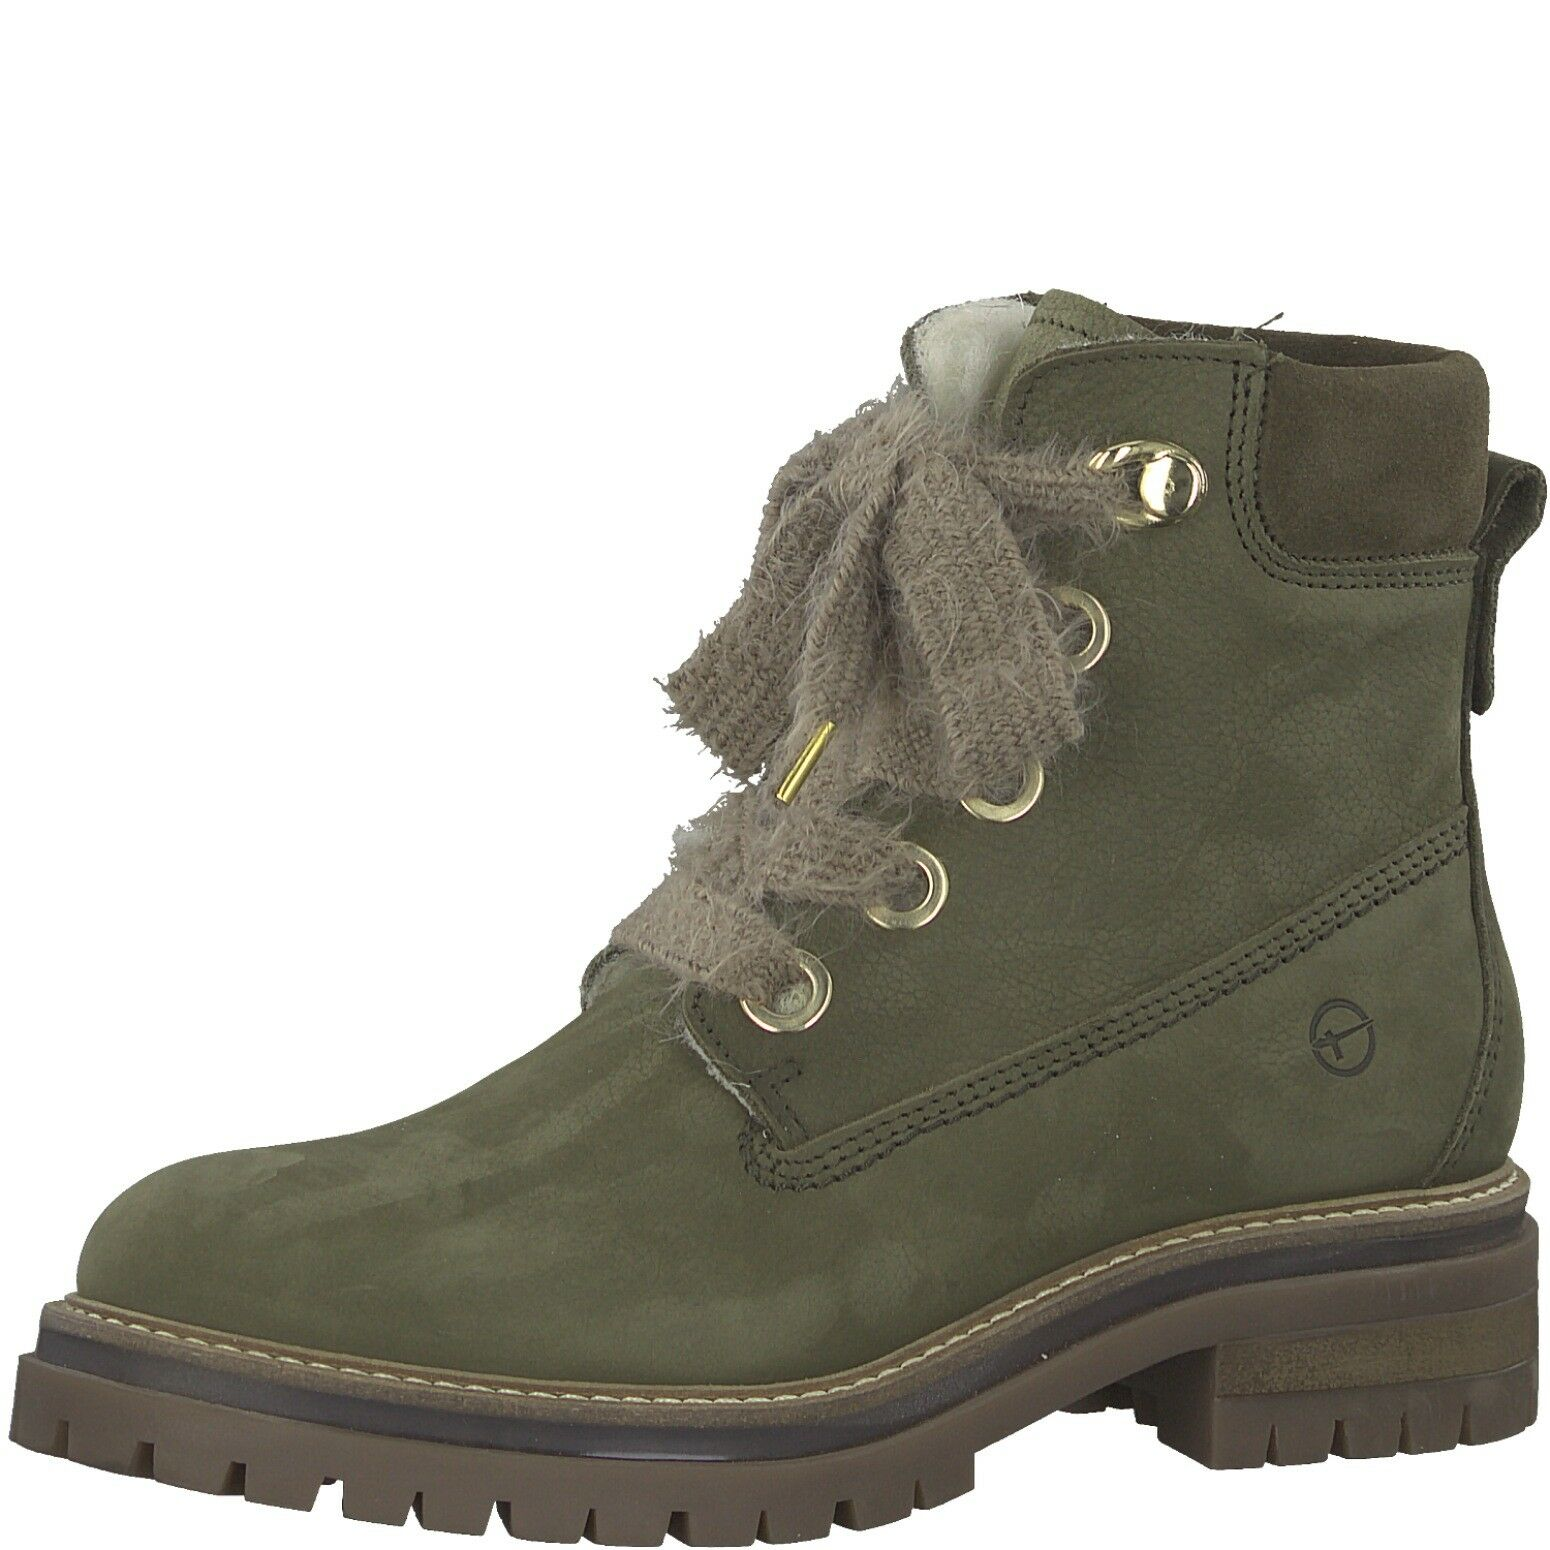 Tamaris Women's Boots Green Olive 39 40 Virgin Wool Leather Removable Footbed